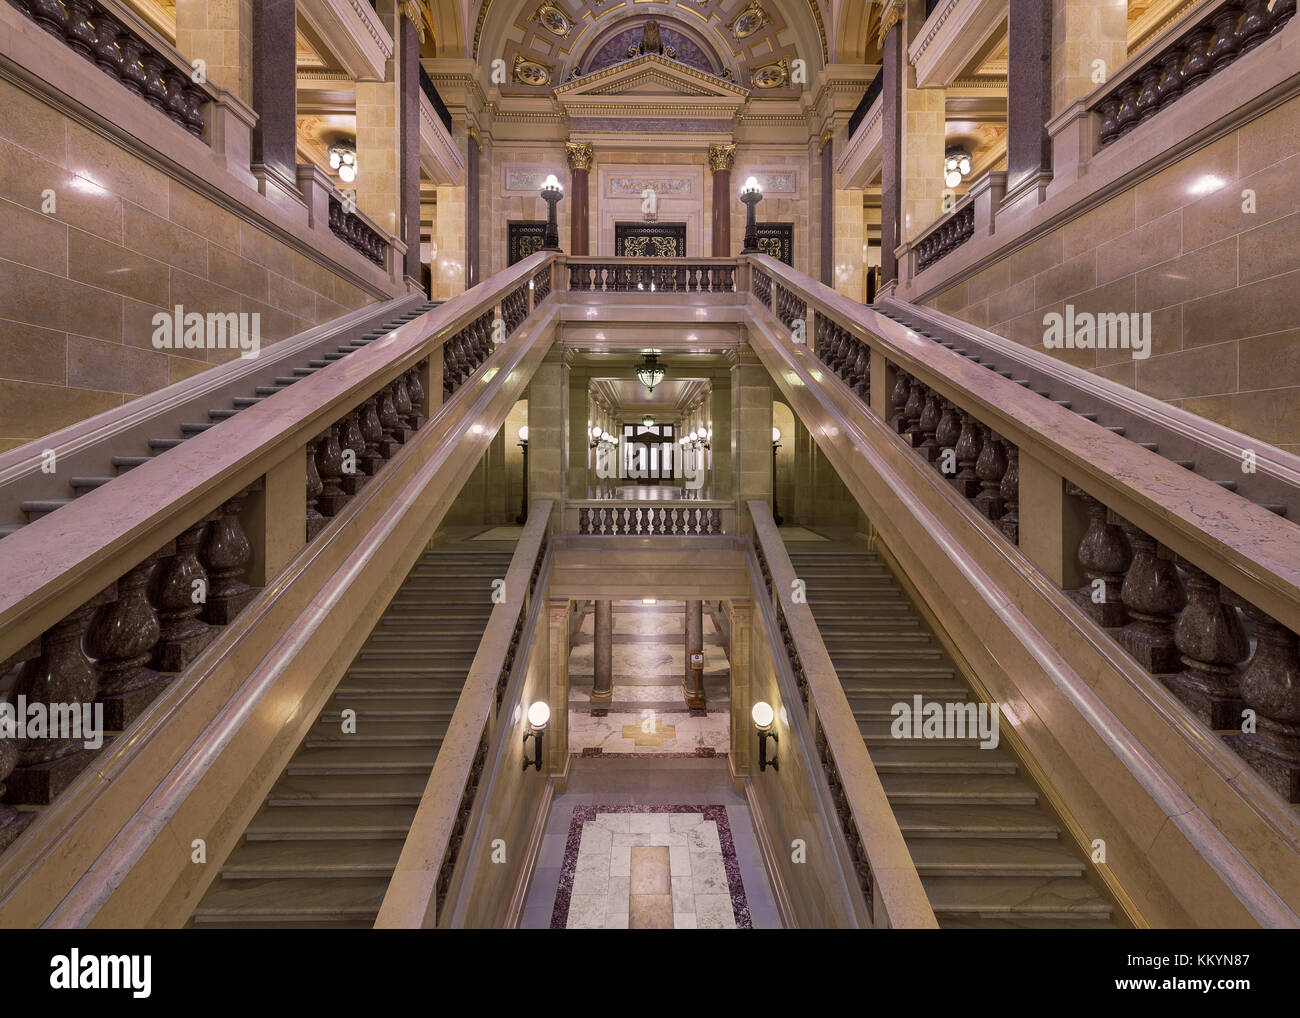 Corridor surrounded by staircases in the Wisconsin State Capitol in Madison, Wisconsin - Stock Image